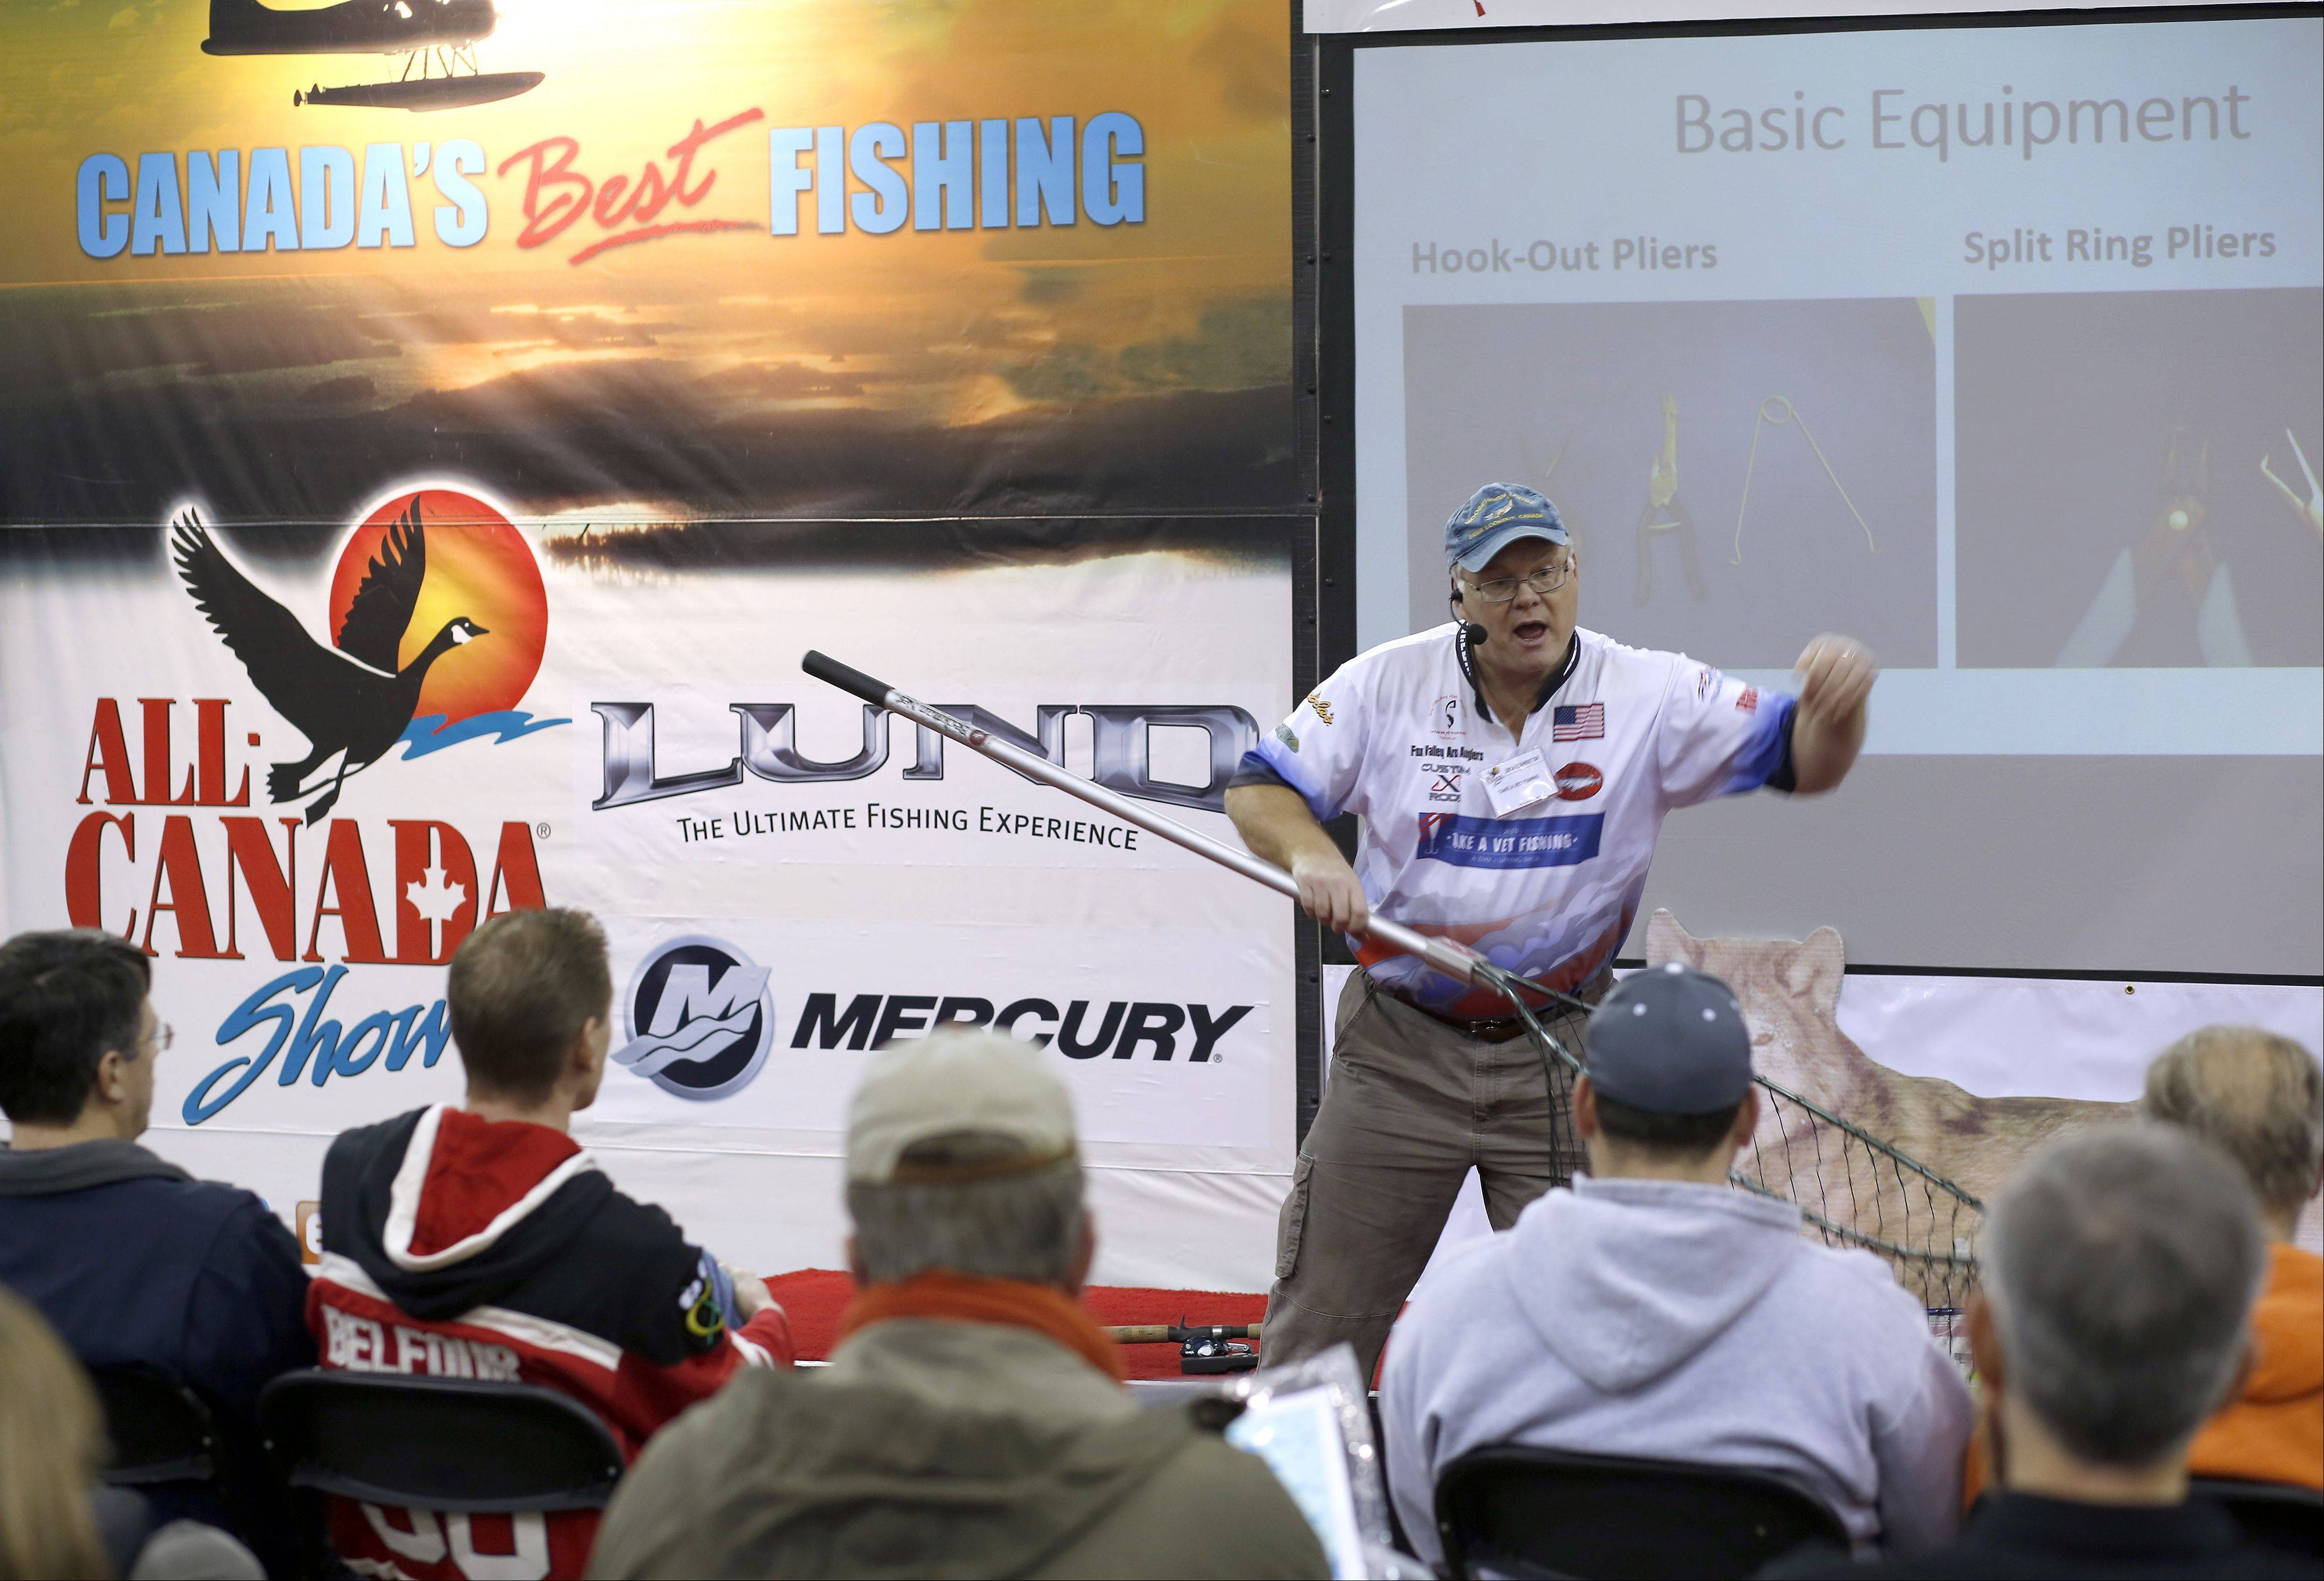 Presenter Ken Kuhnle talks about preparing for pike and muskie fishing Saturday during the annual All-Canada Show at Pheasant Run in St. Charles.